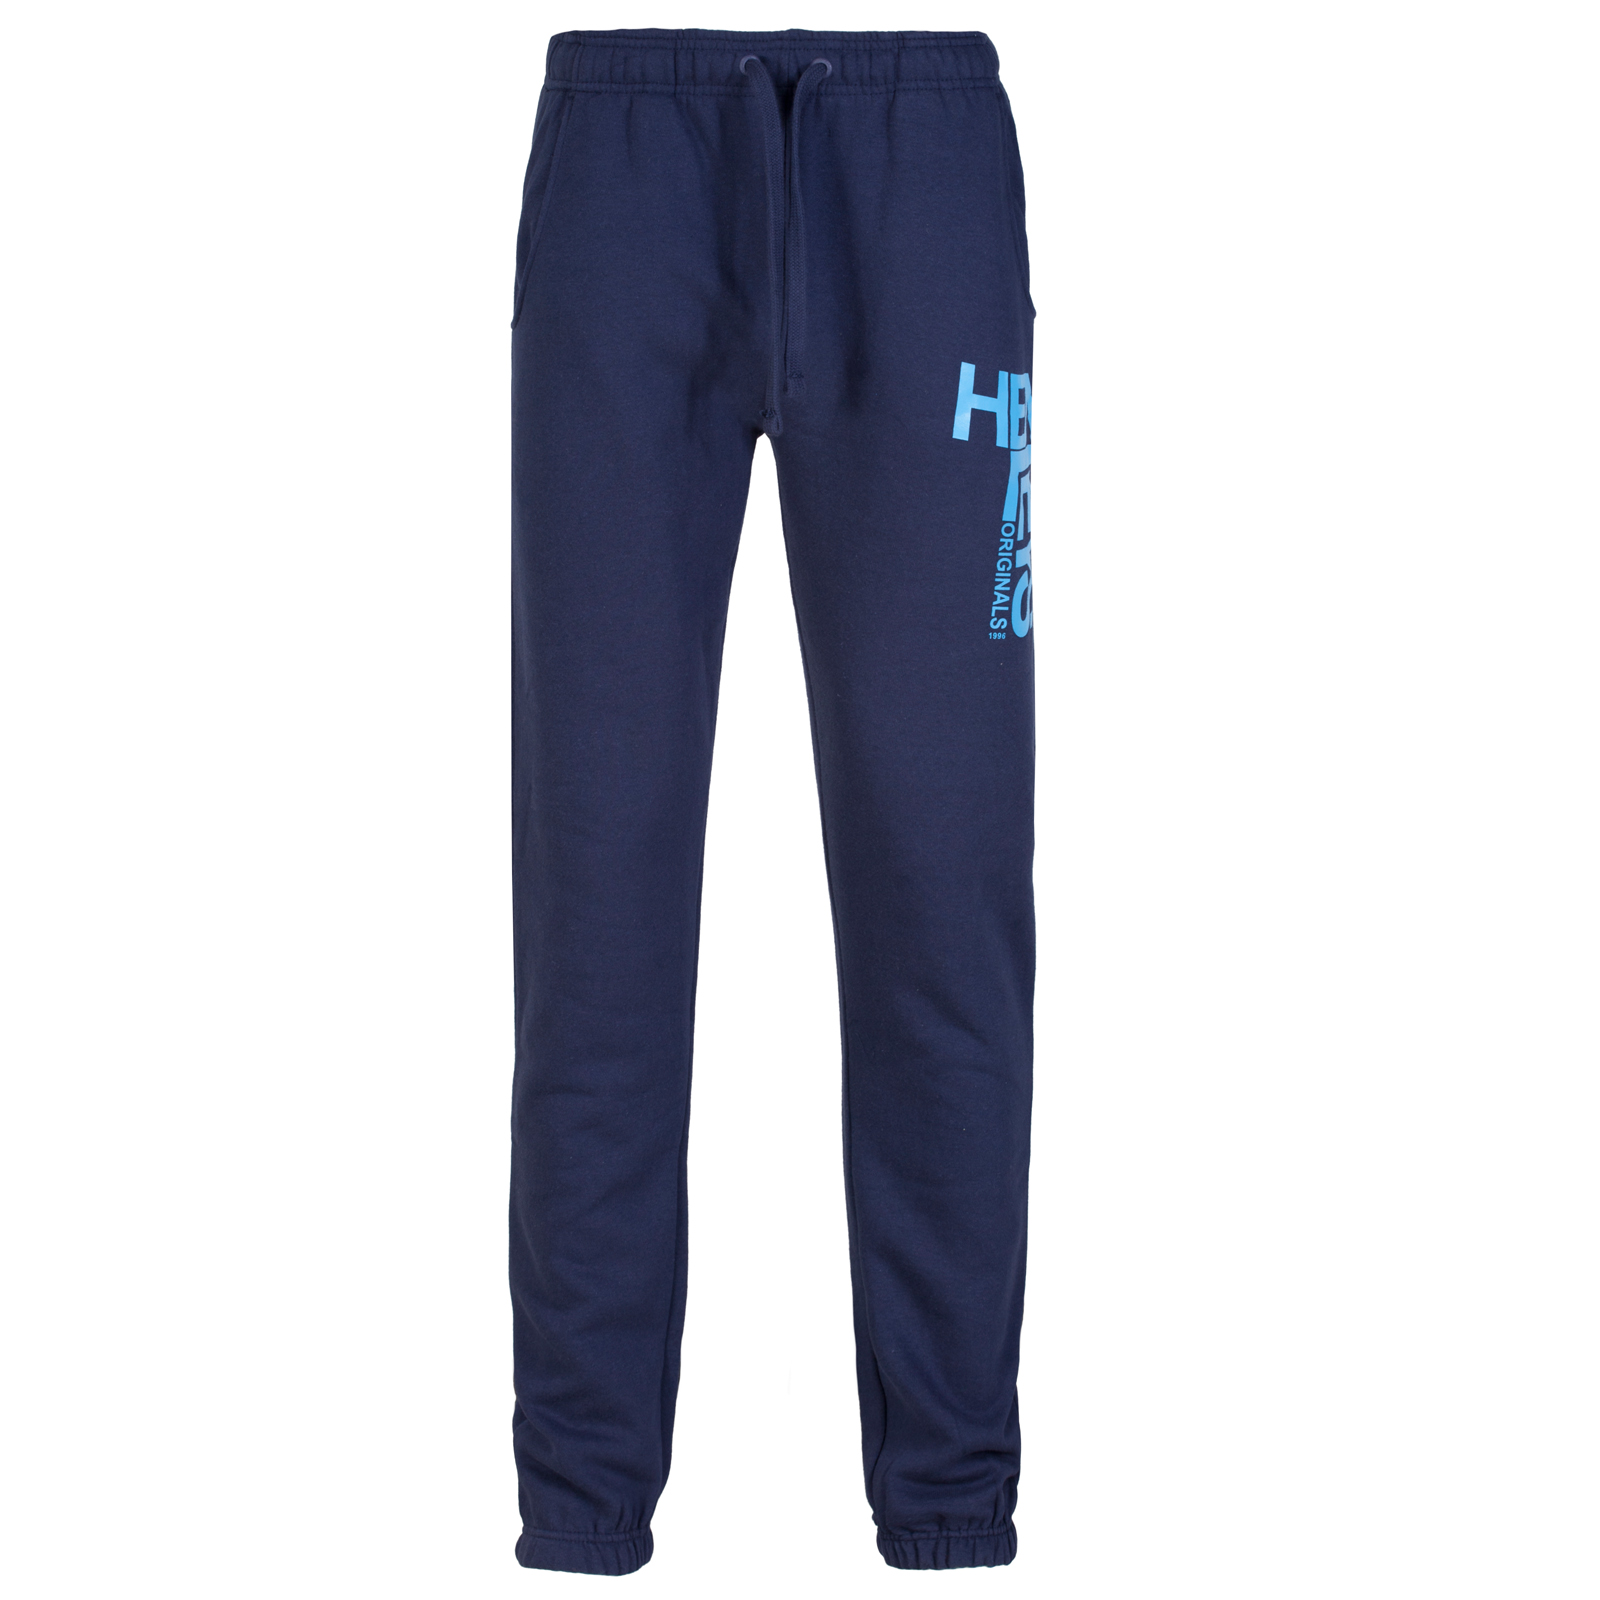 From tight-fitting pants for women to cargo pants and sleep pants for boys, our collection is suited for multiple uses. Men will enjoy fleece sweatpants crafted from a cotton and polyester blend that stretches for just the right amount comfort.